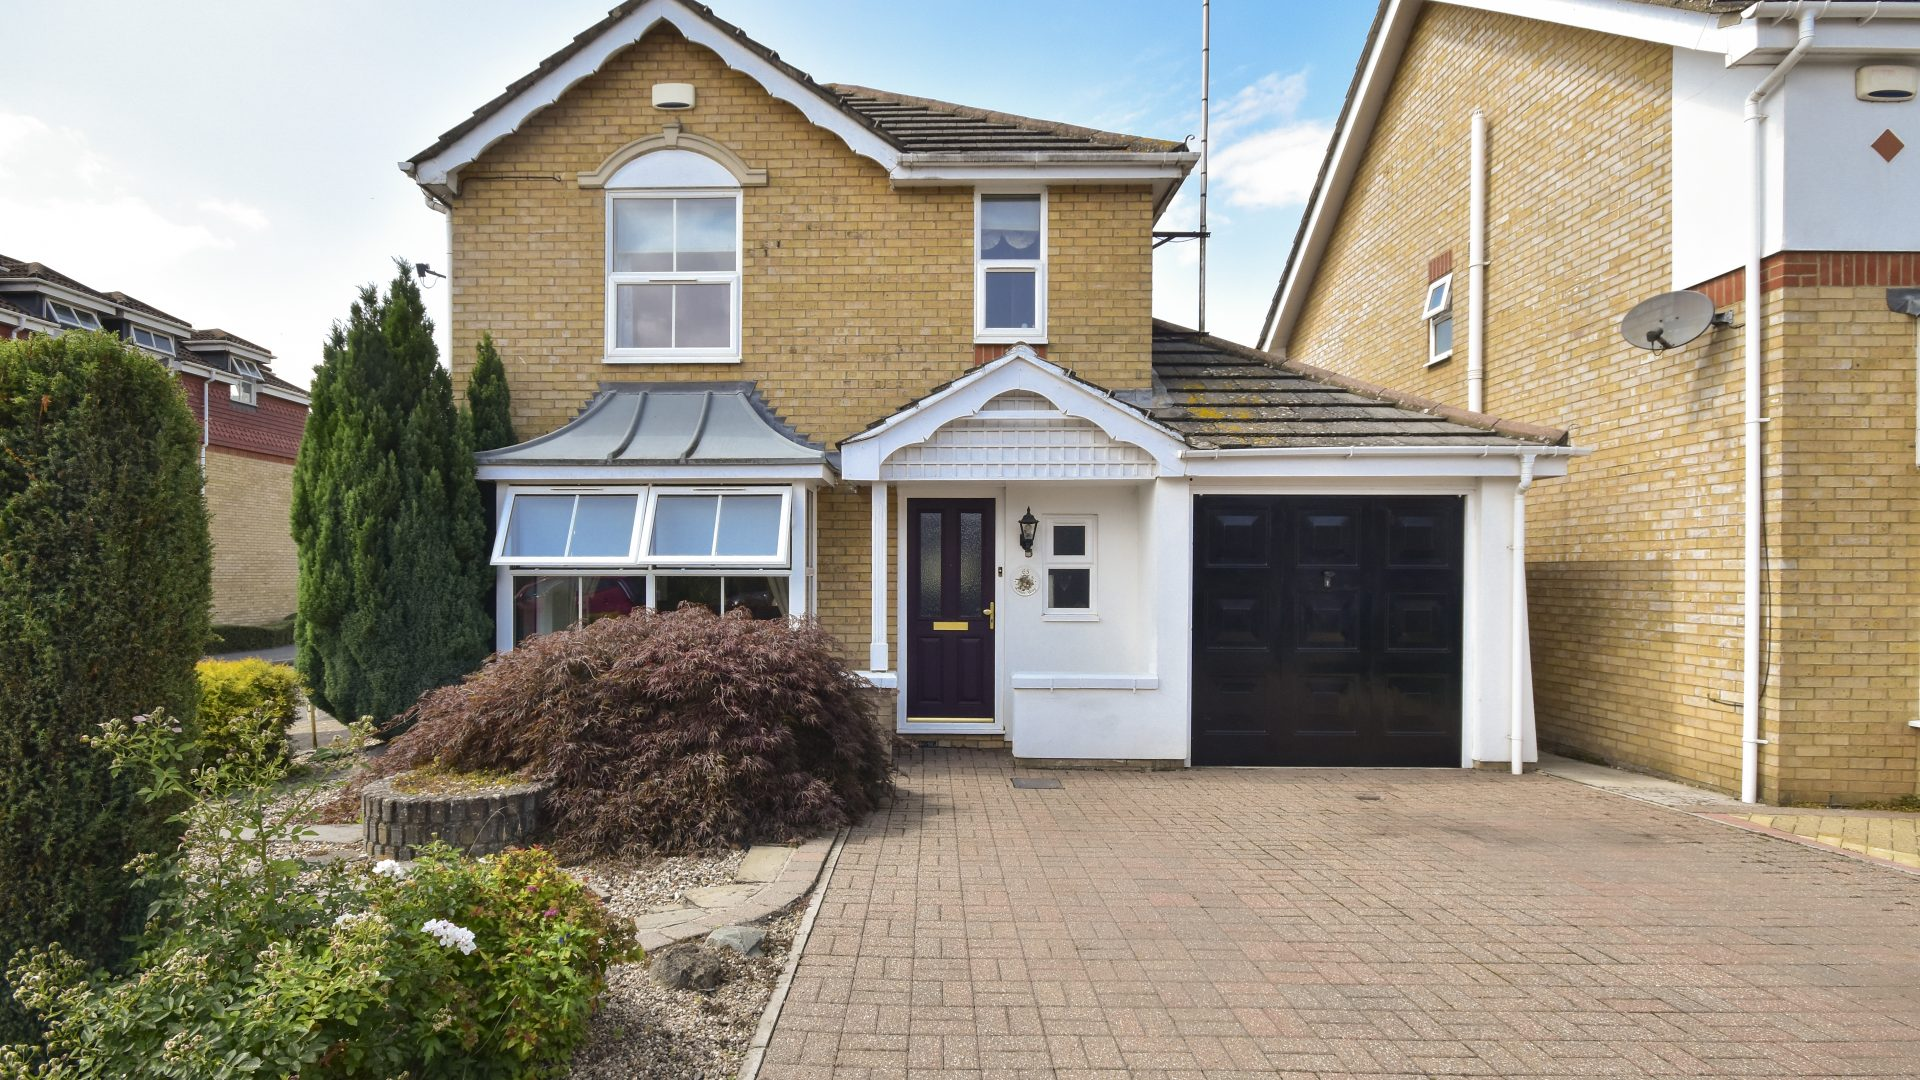 Aisher Way, Sevenoaks for sale with Mr and Mrs Clarke estate agent